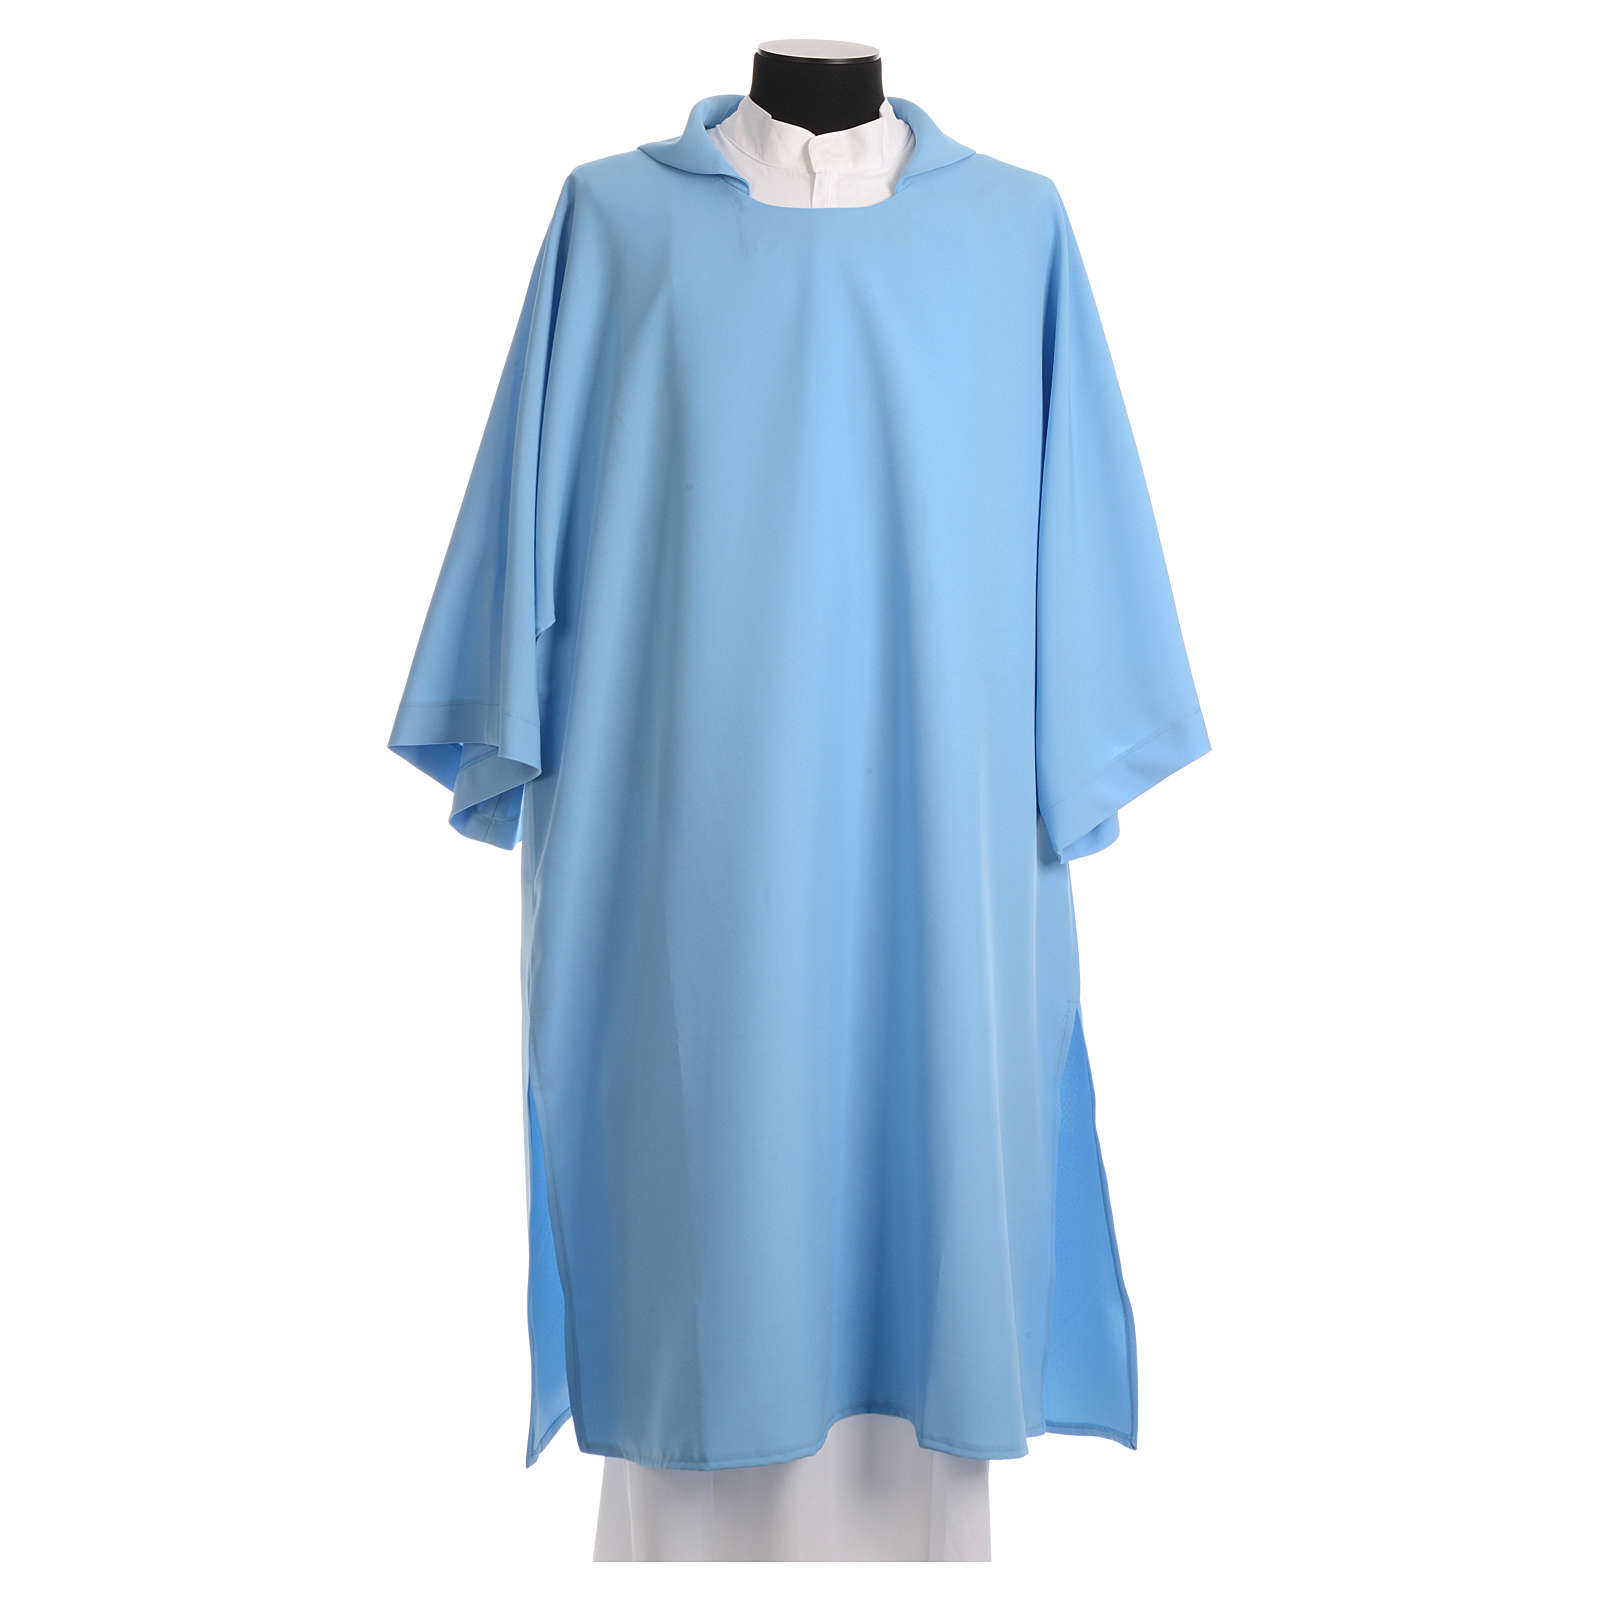 Dalmatic in polyester, light blue 4